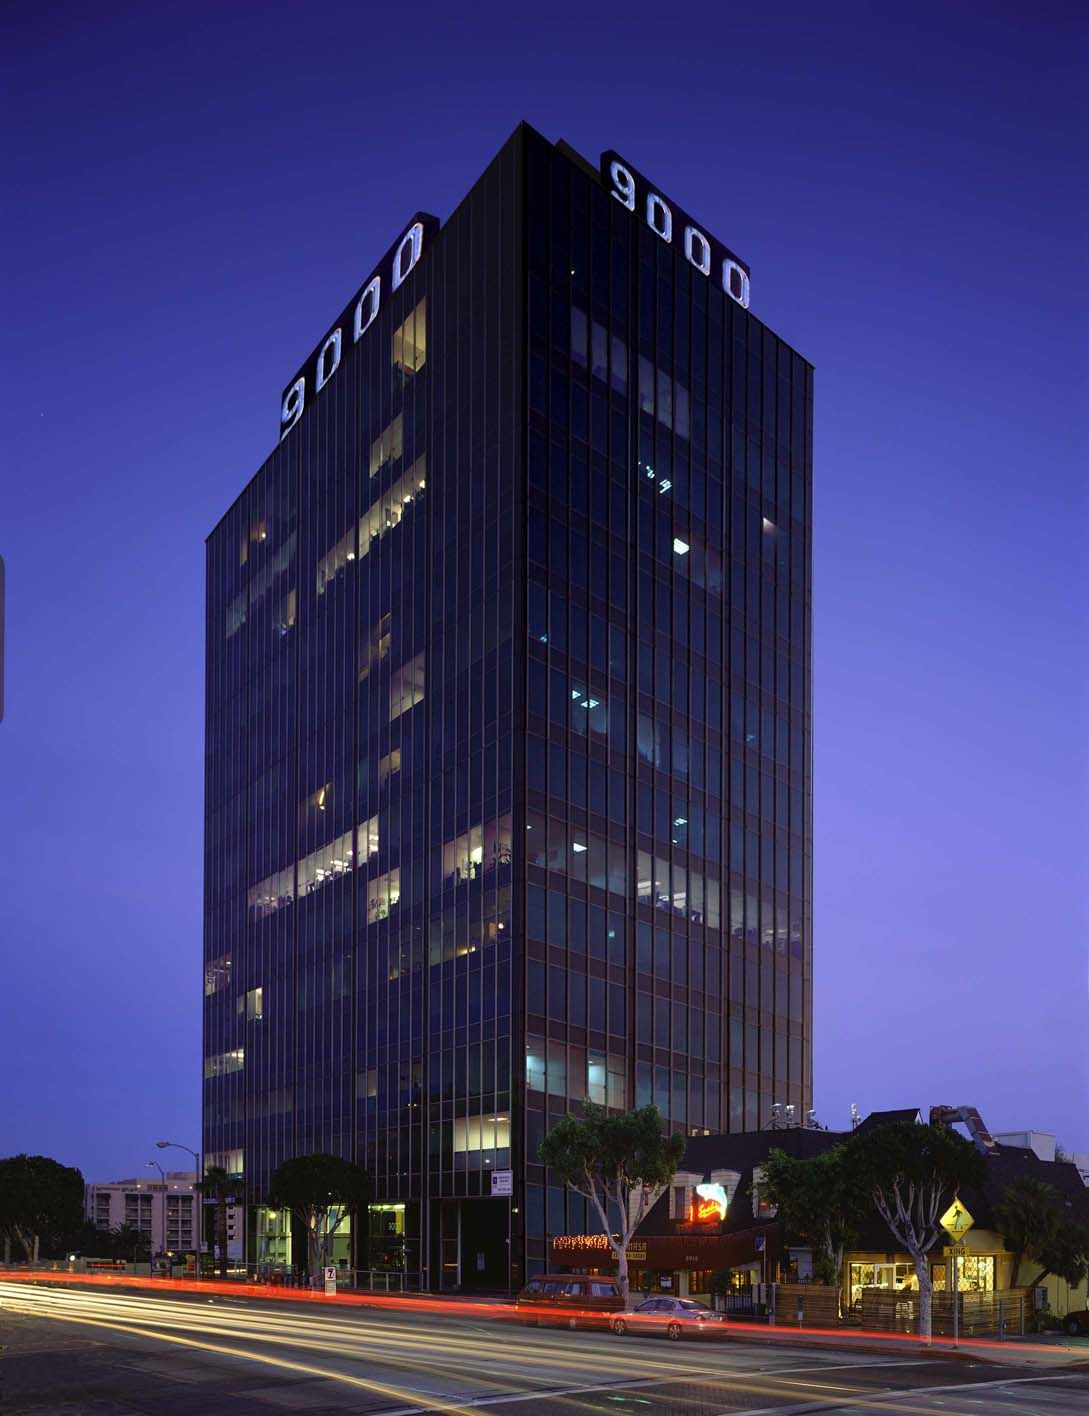 9000 West Sunset Boulevard One Of The Most Prestigious Addresses In Los Angeles County Is A Marquee Identity On The Vibrant Sunset Strip As The Tallest Bui